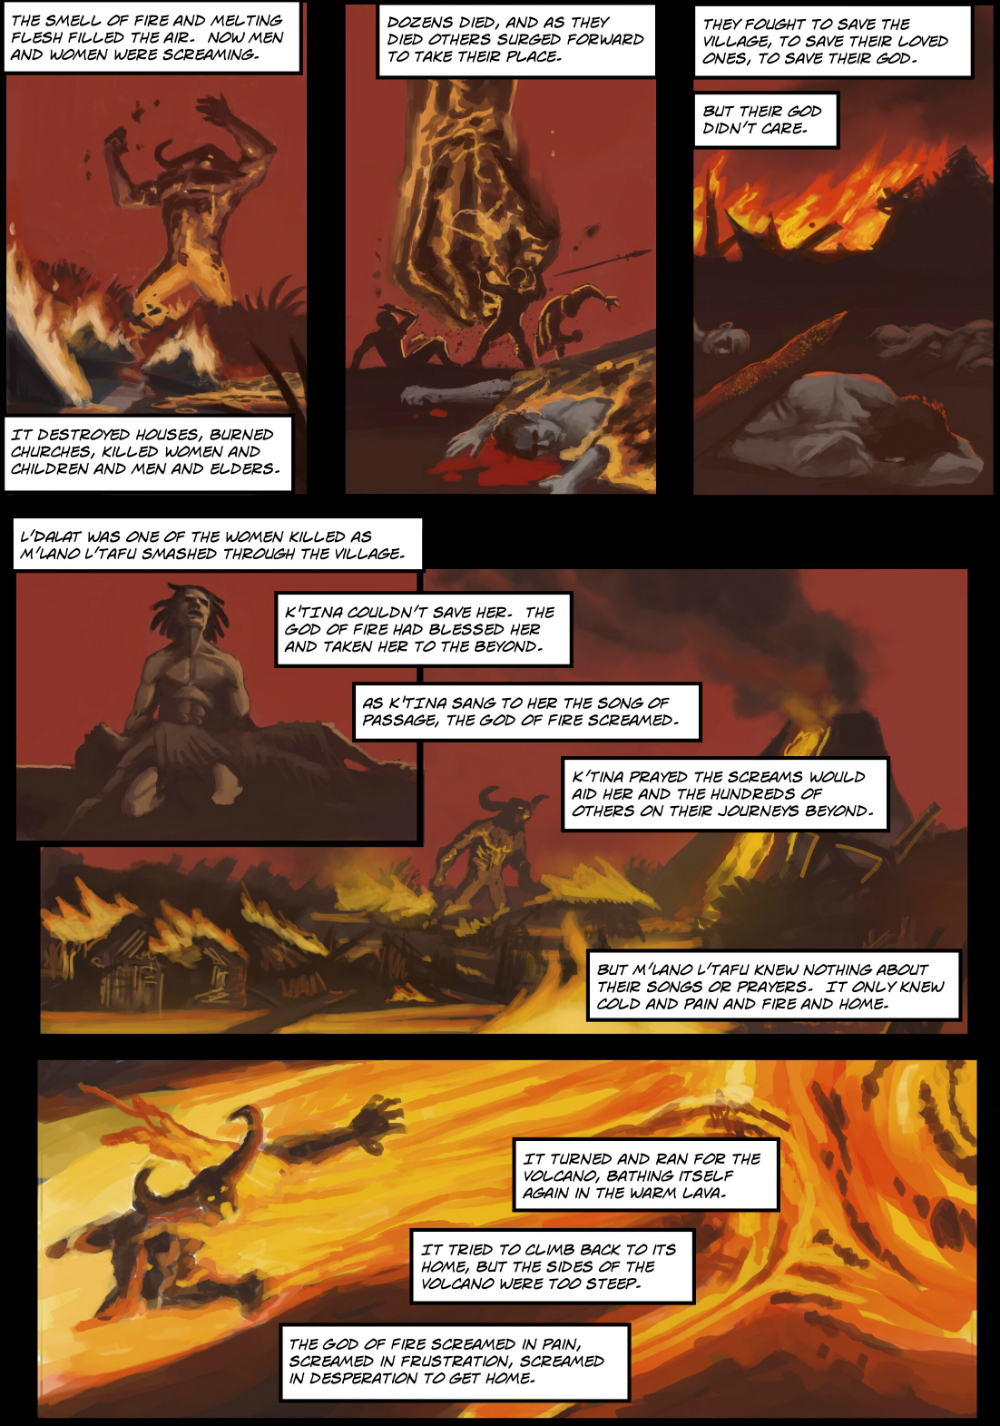 RISING page 4 - story 22 in The Book of Lies